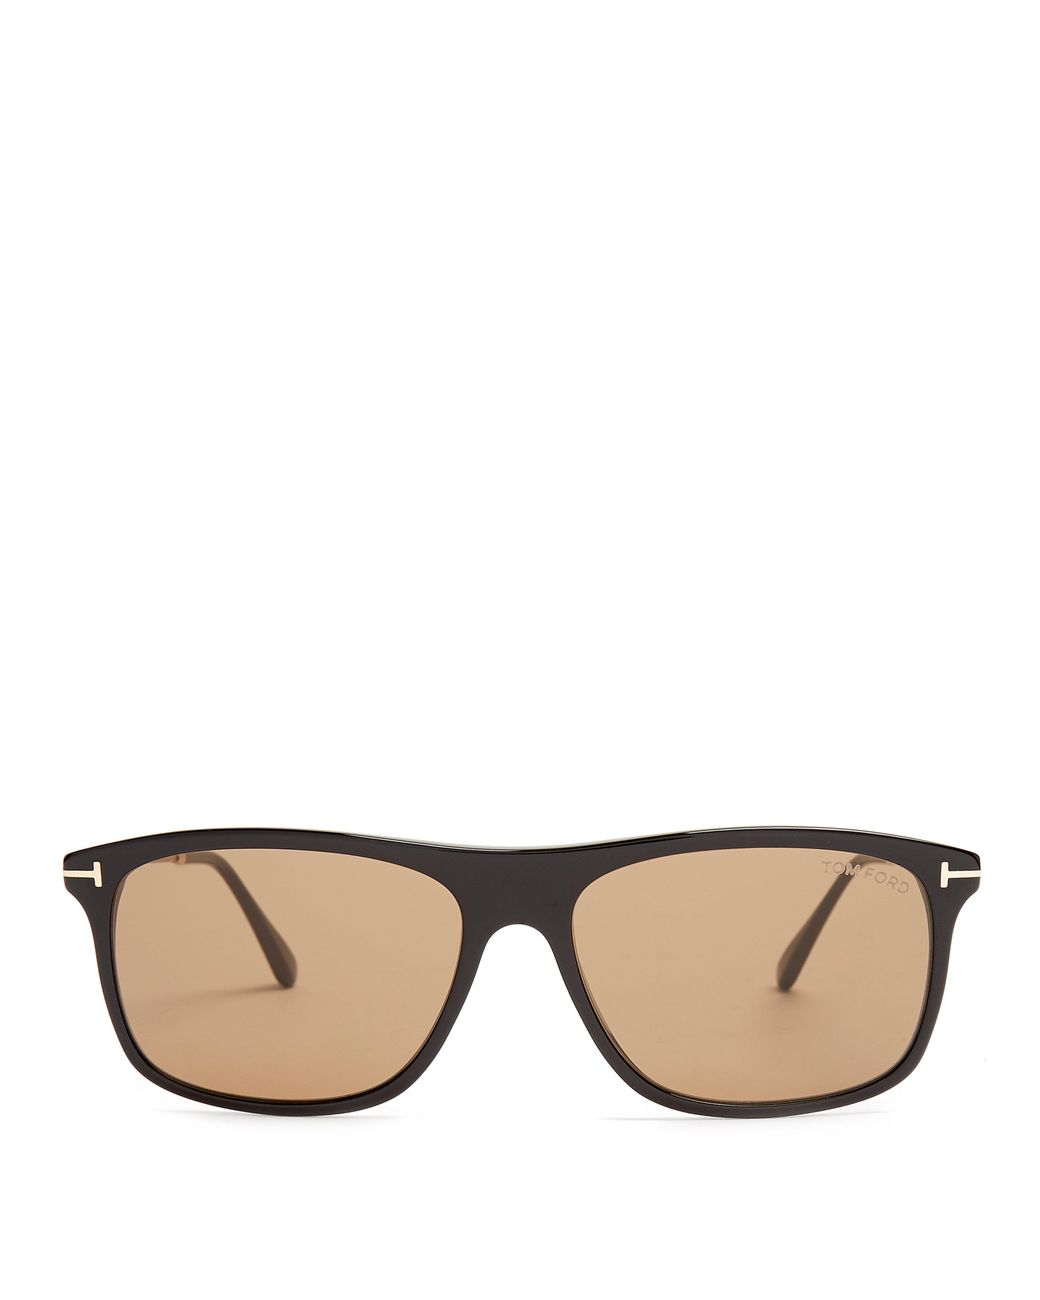 2f6866caf5df Long-Touch to Zoom. Long-Touch to Zoom. 1  2  3  4  5. Tom Ford - Brown  Eric Rectangle Frame Sunglasses for Men ...